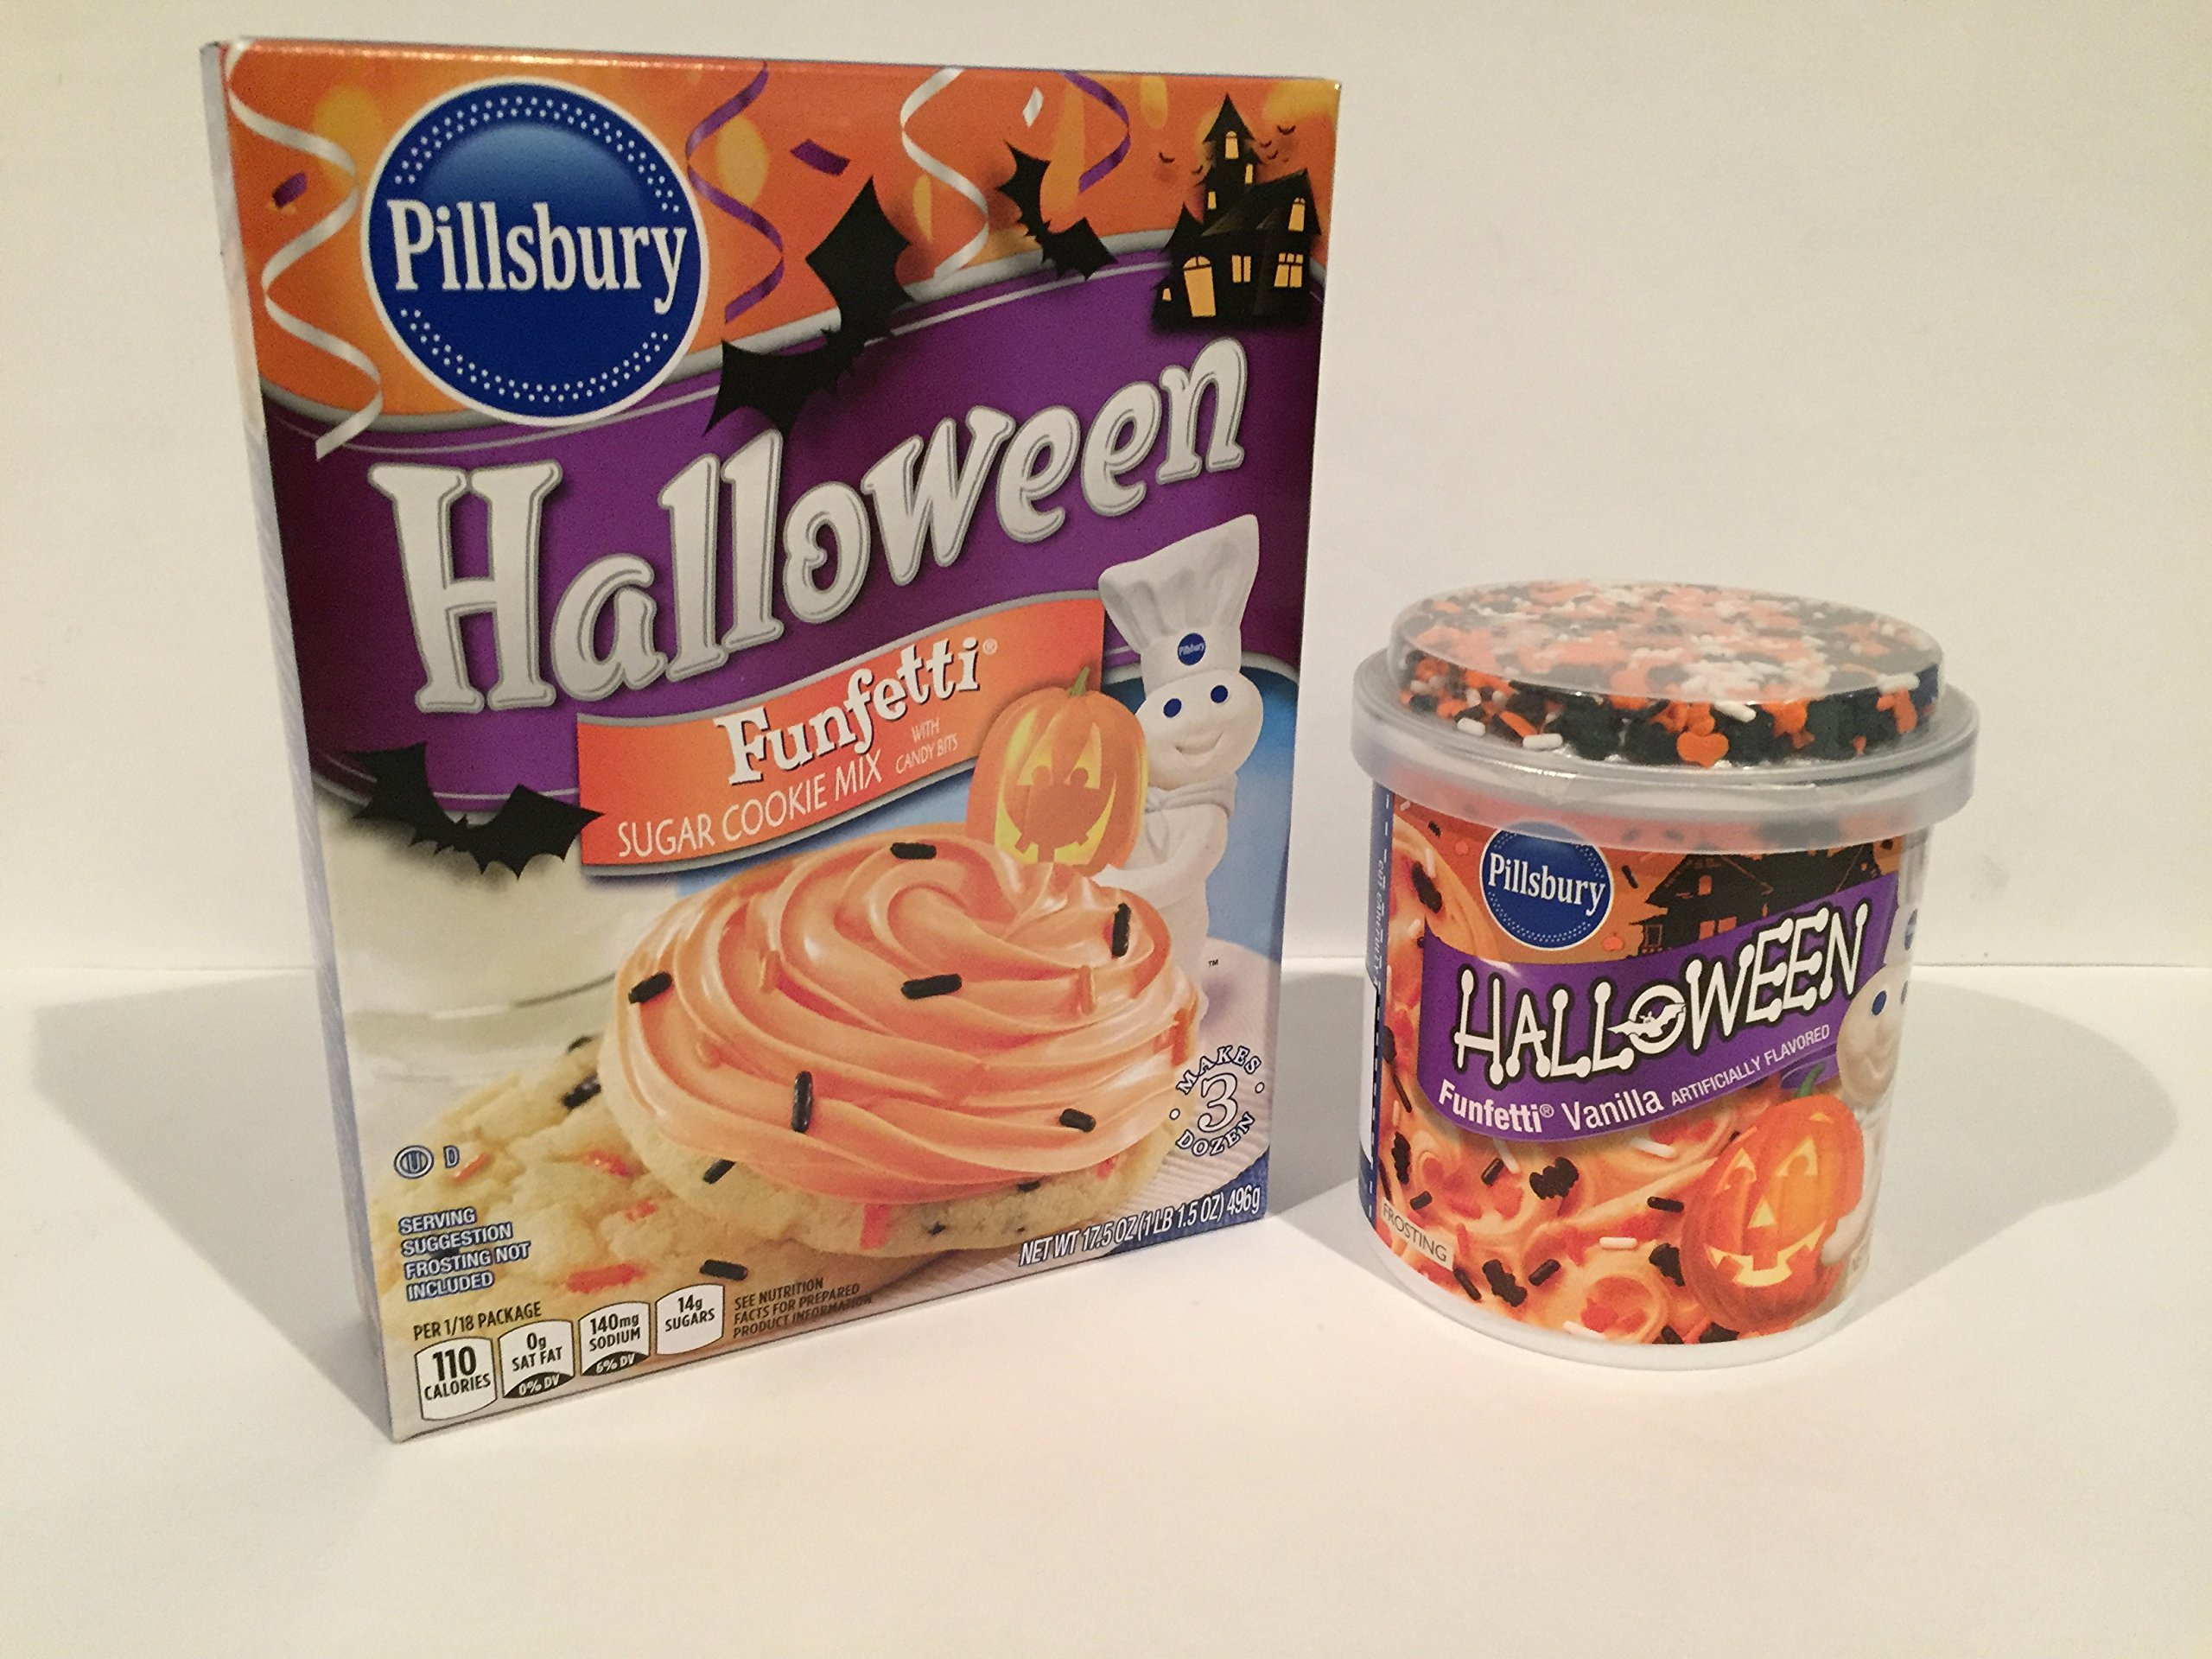 Pillsbury Halloween Funfetti Sugar Cookie Mix with Candy Bits, 17.5 oz AND Halloween Funfetti Frosting Vanilla w/Sprinkles by Pillsbury